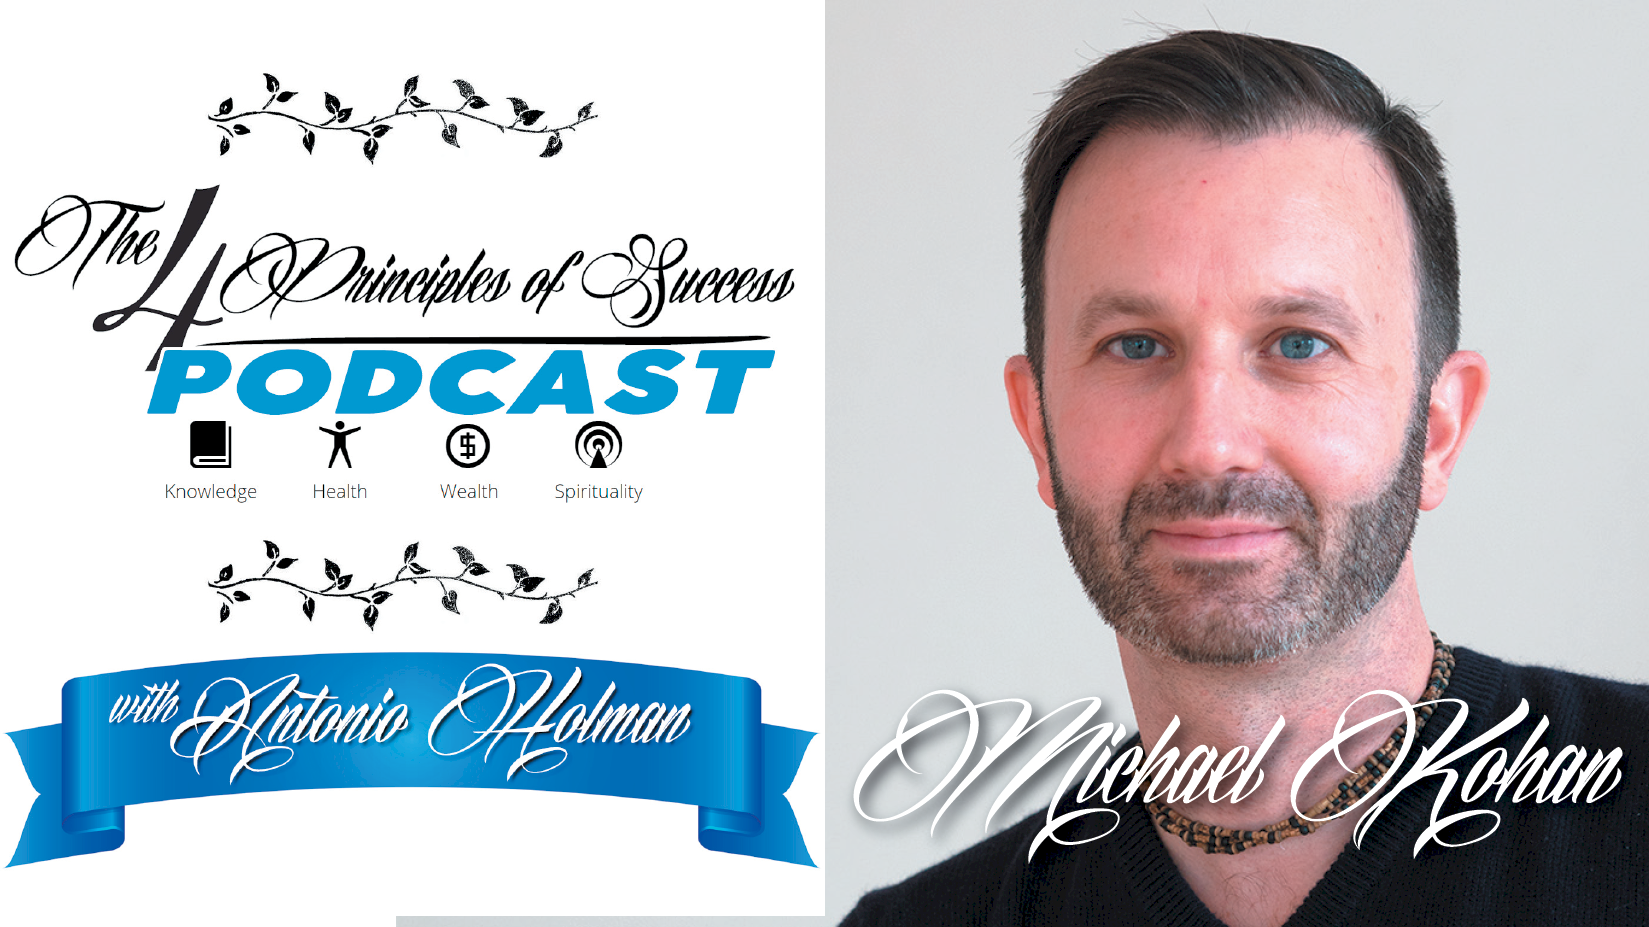 The 4 Principles of Success guest Michael Kohan